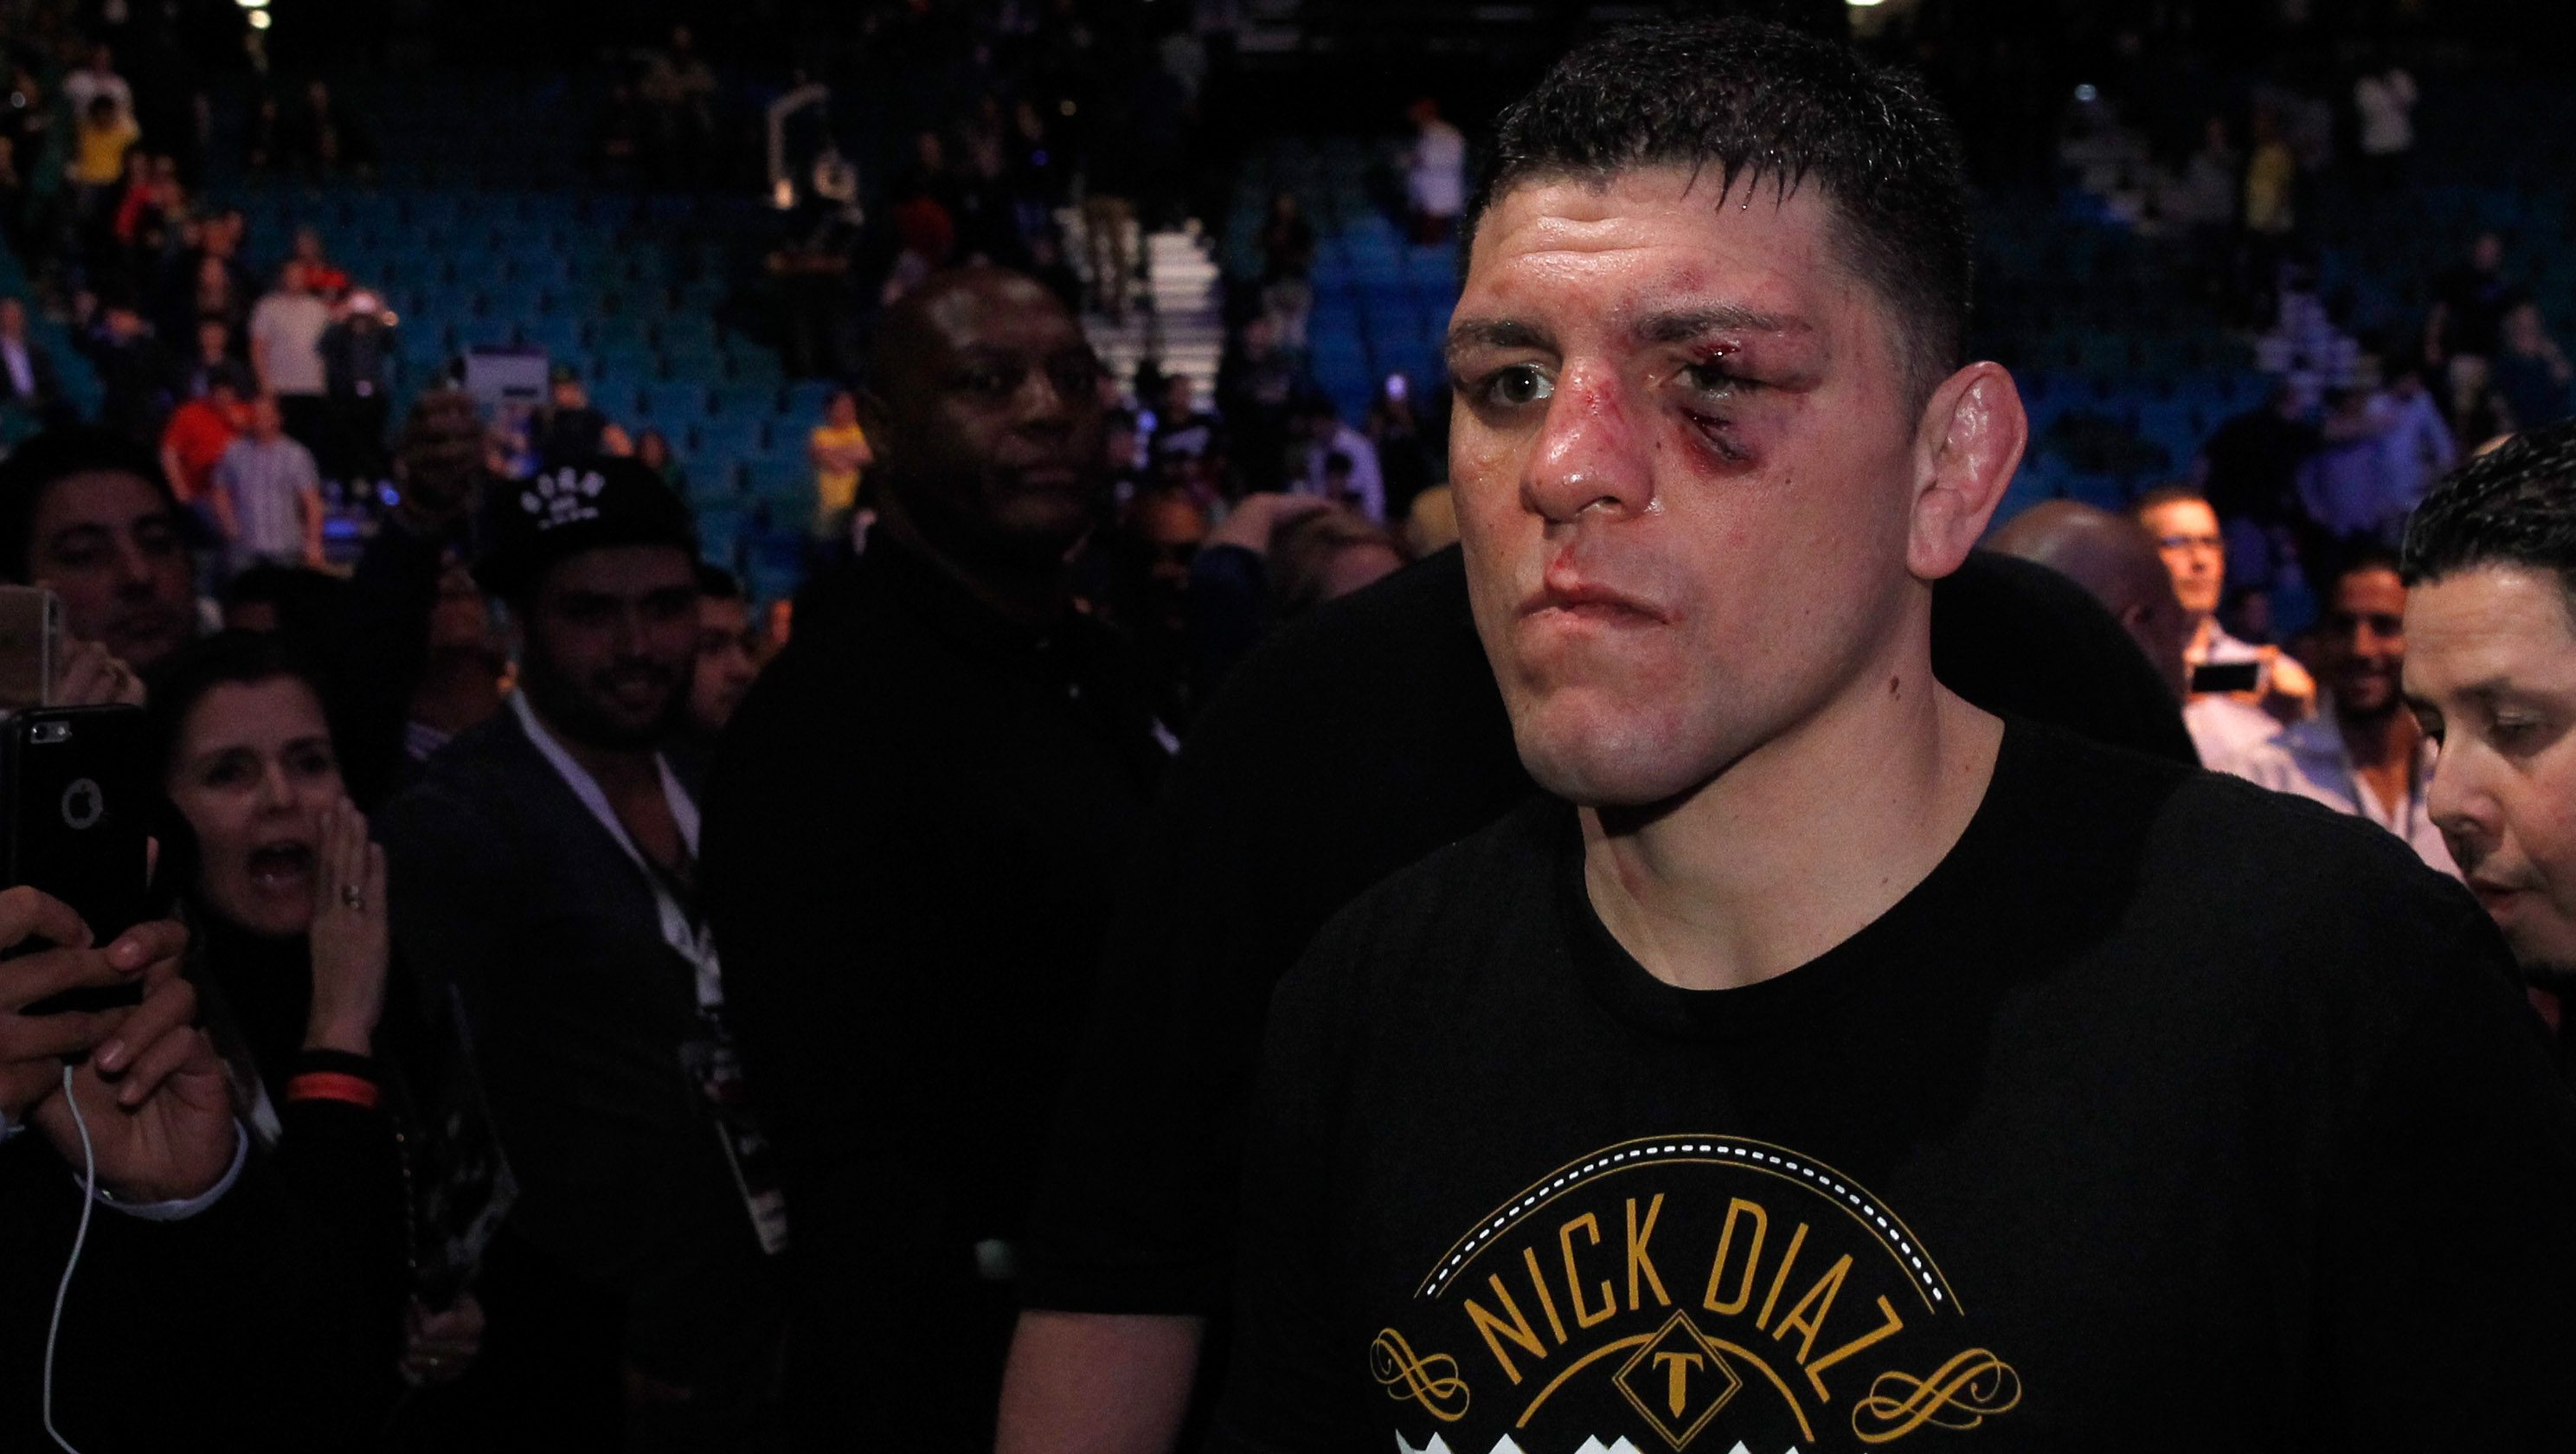 Nick Diaz Sparks Comeback Speculation With Recent Post [LOOK]